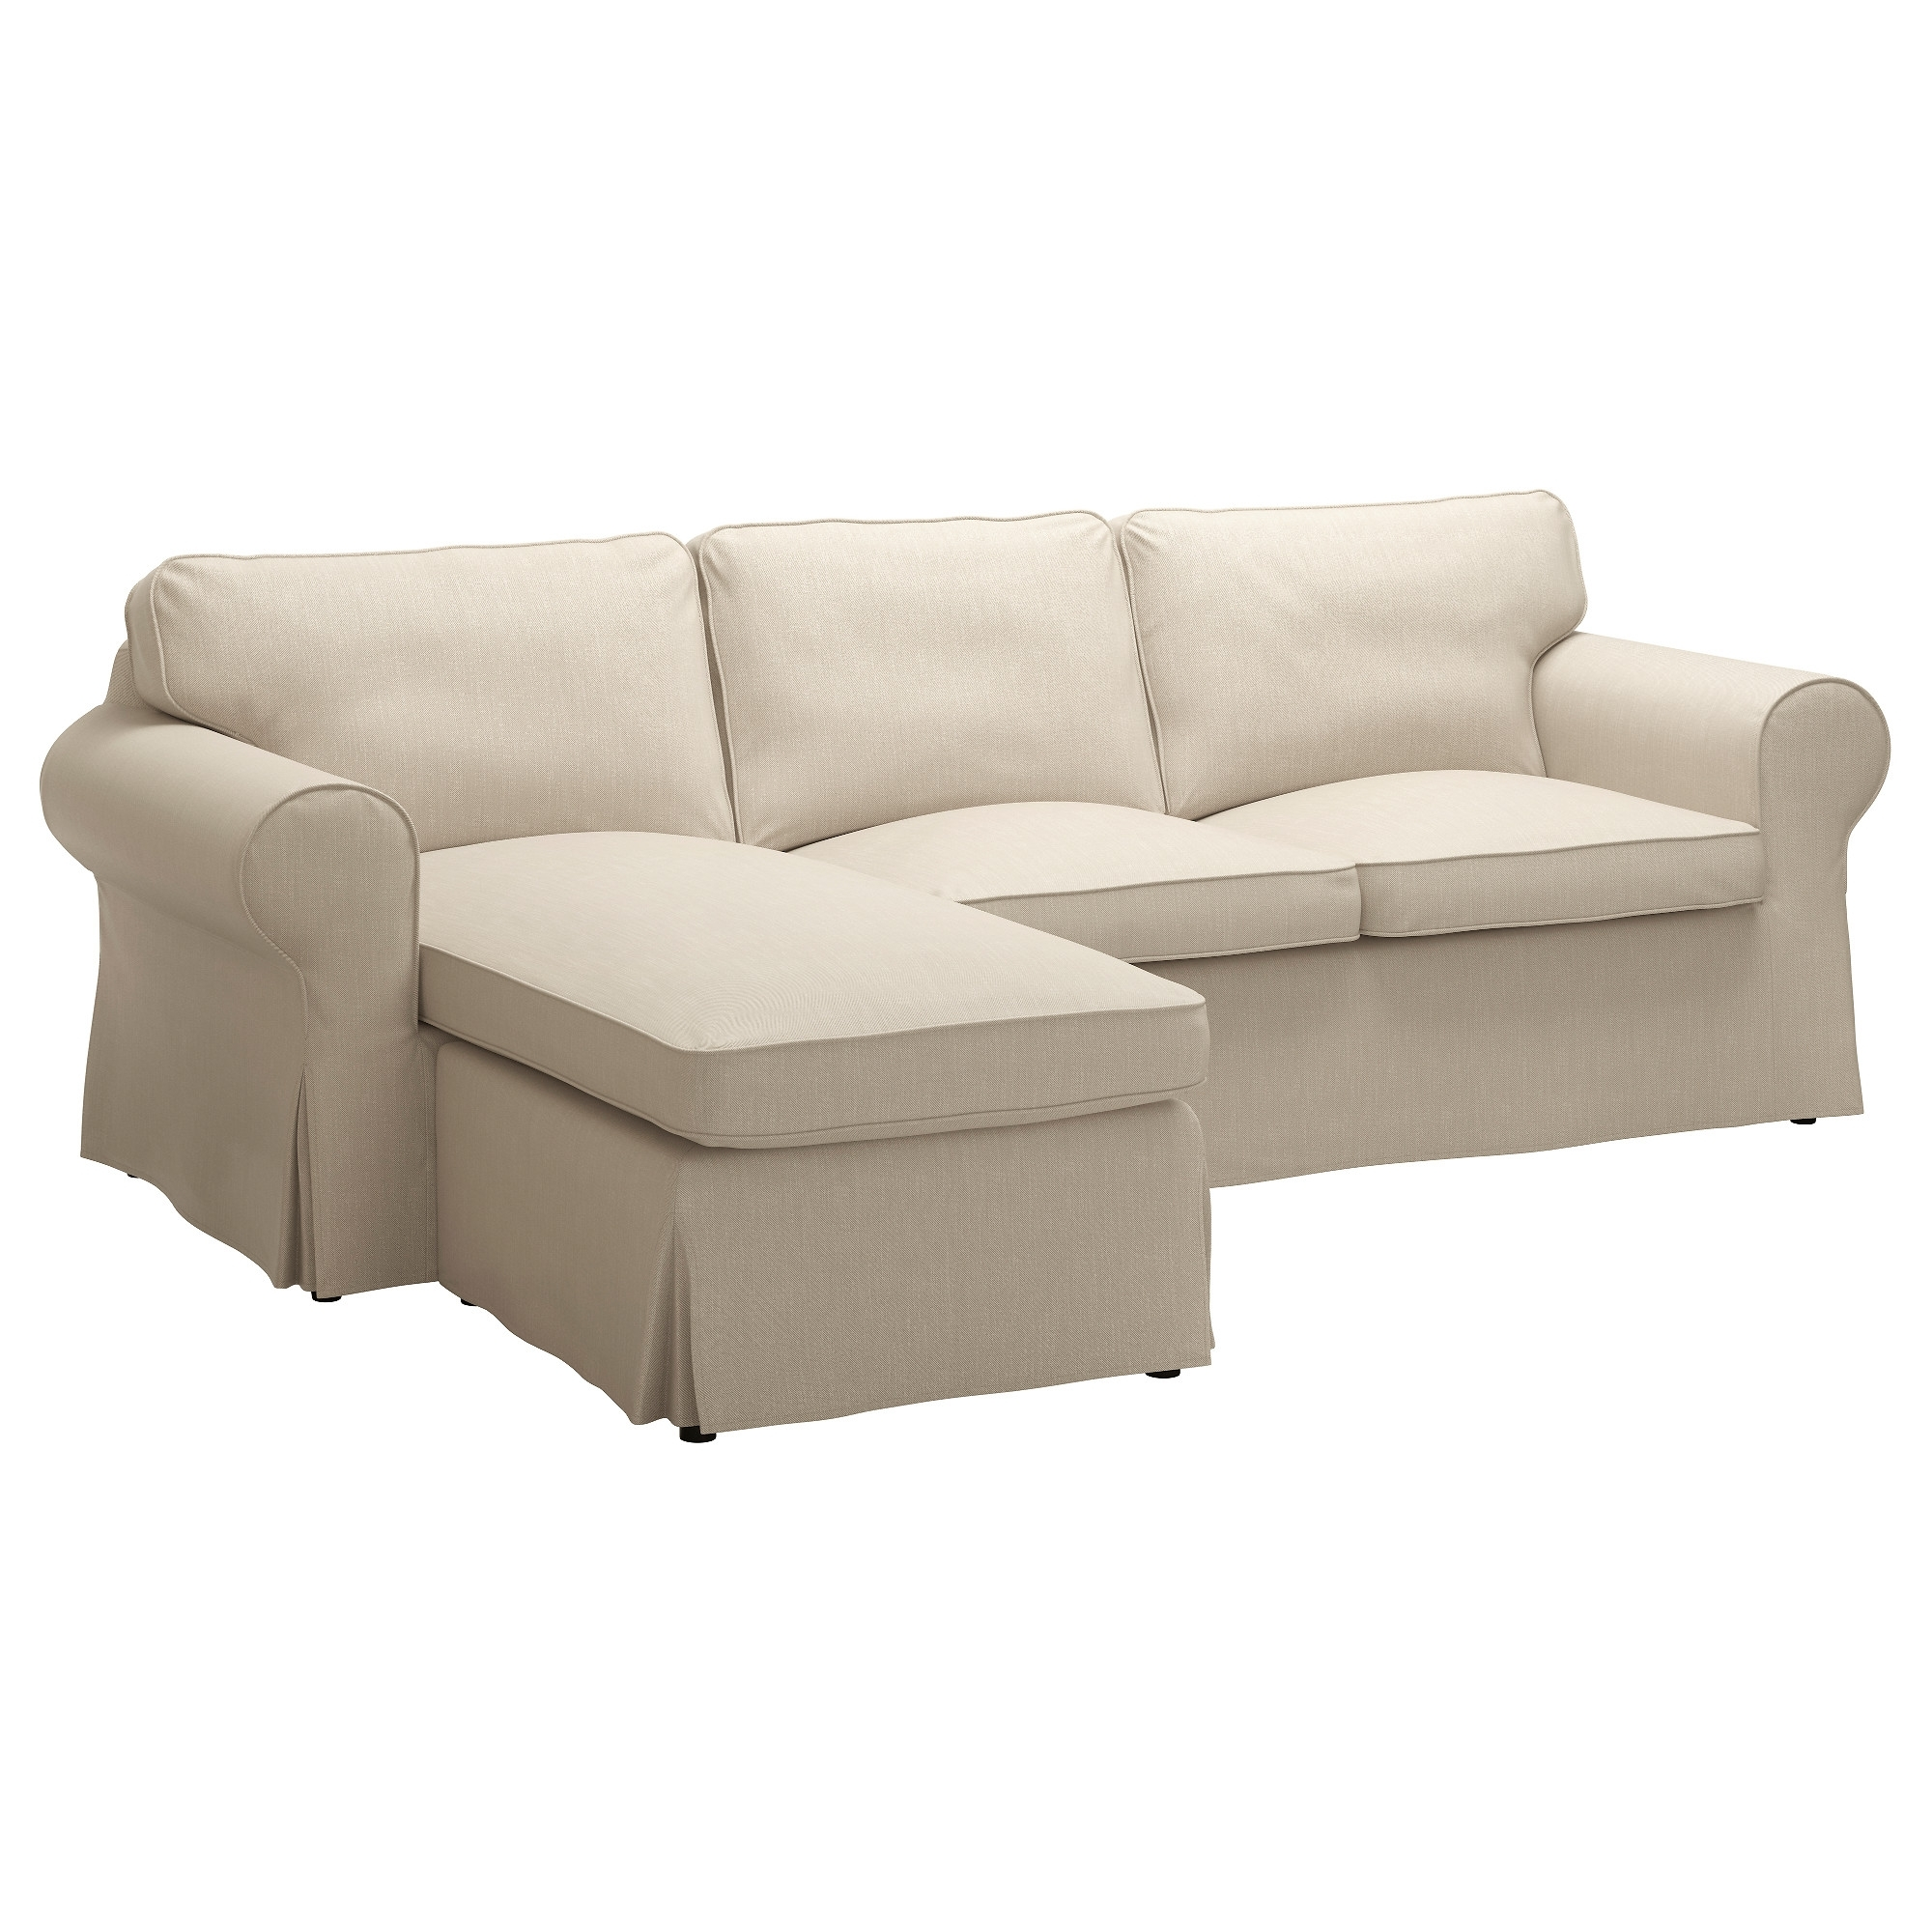 Chaise Couches Inside 2018 Ektorp Sofa – With Chaise/nordvalla Light Blue – Ikea (View 2 of 15)